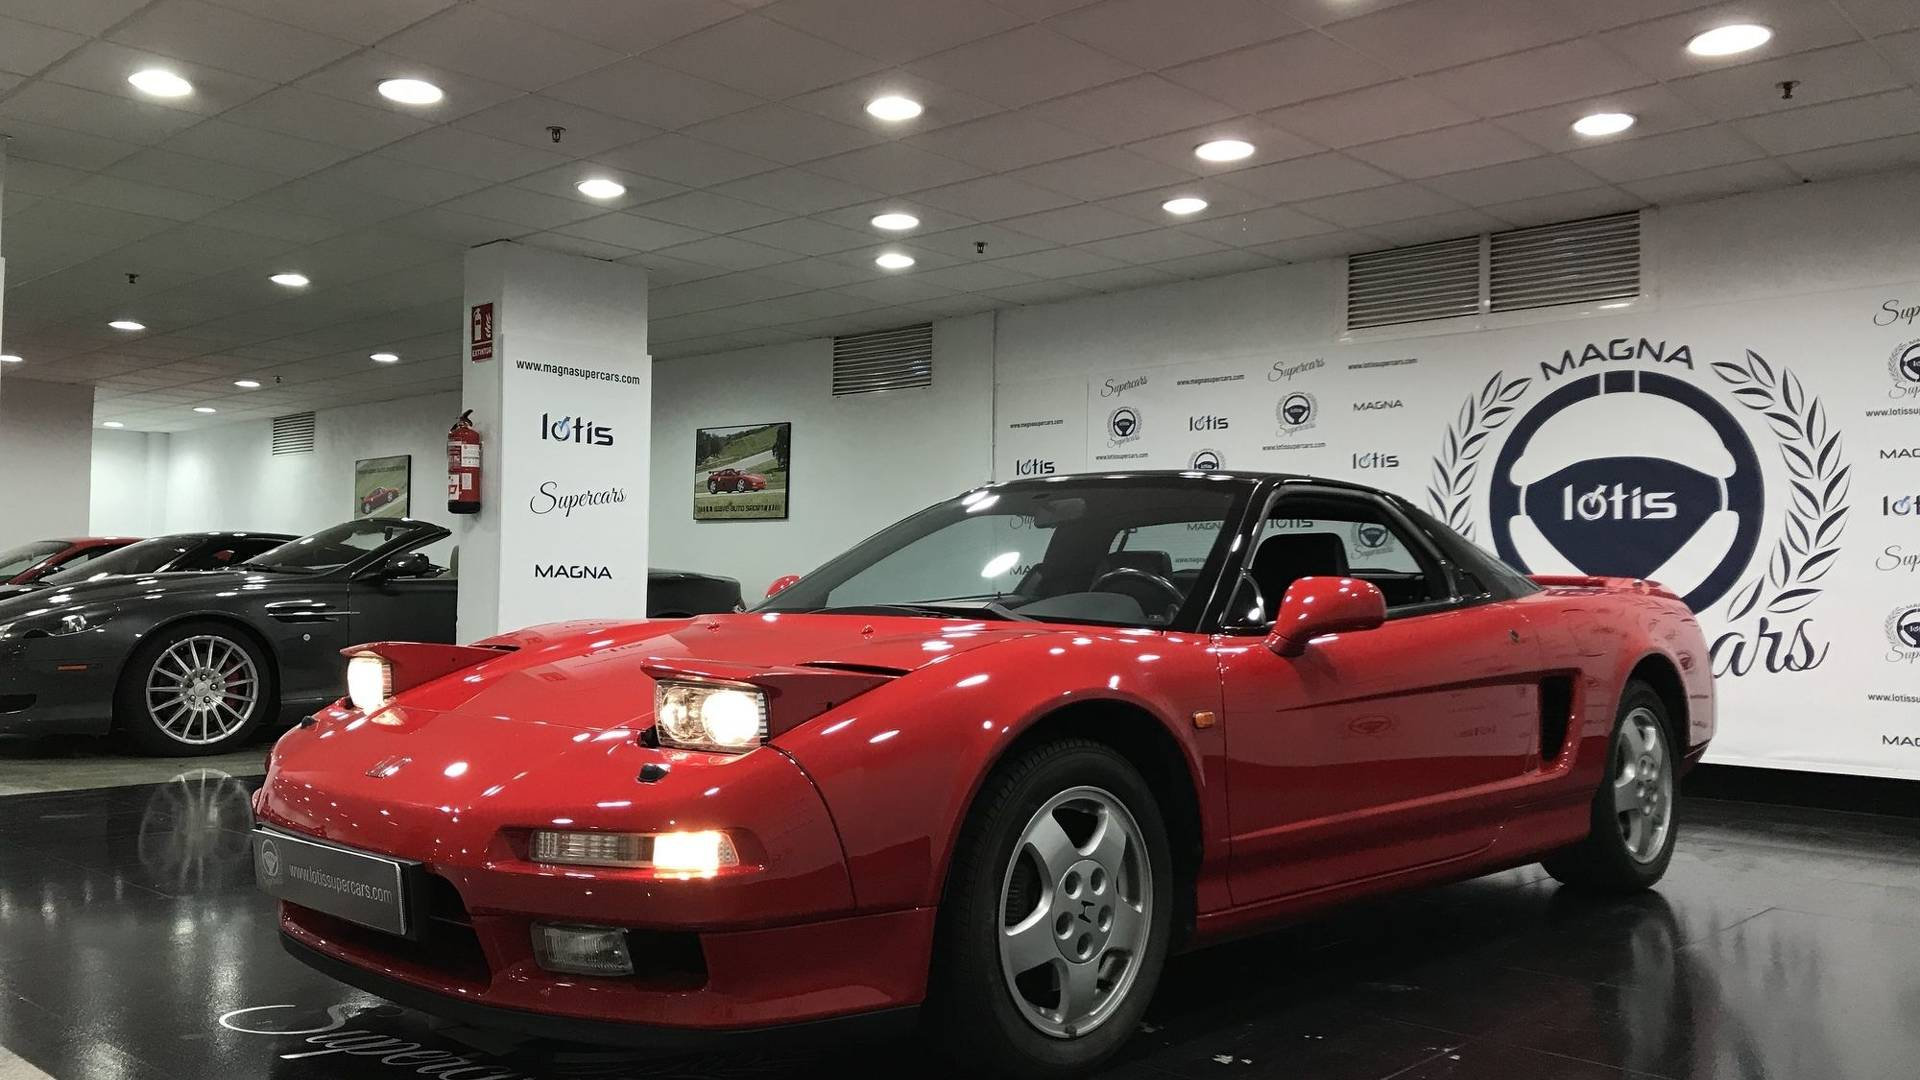 Acura NSX In TipTop Shape Up For Grabs At - Acura nsx for sale cheap